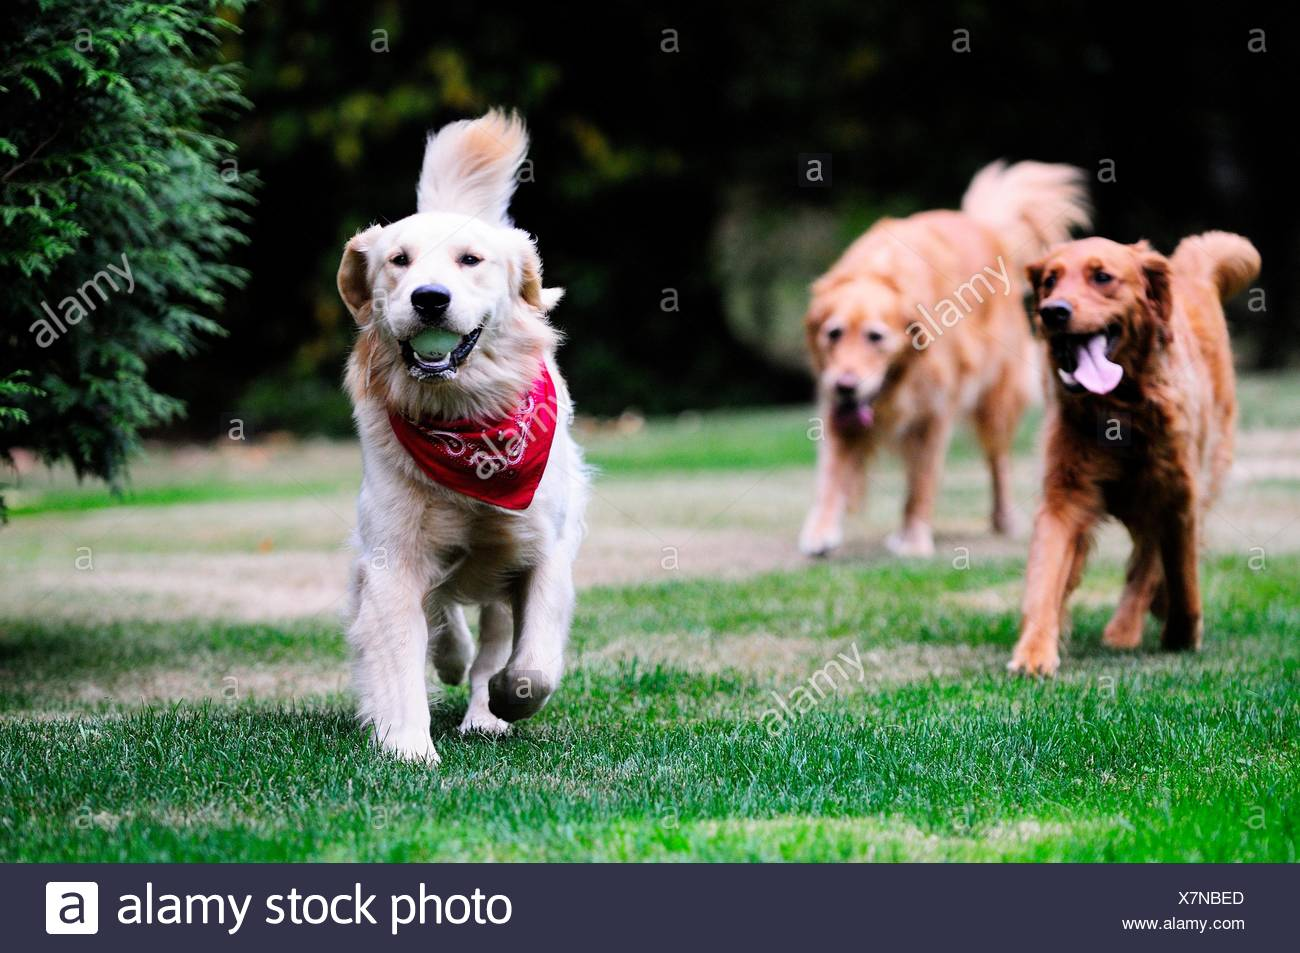 Two Golden Retrievers chase after a third Golden Retriever that has a ball. - Stock Image